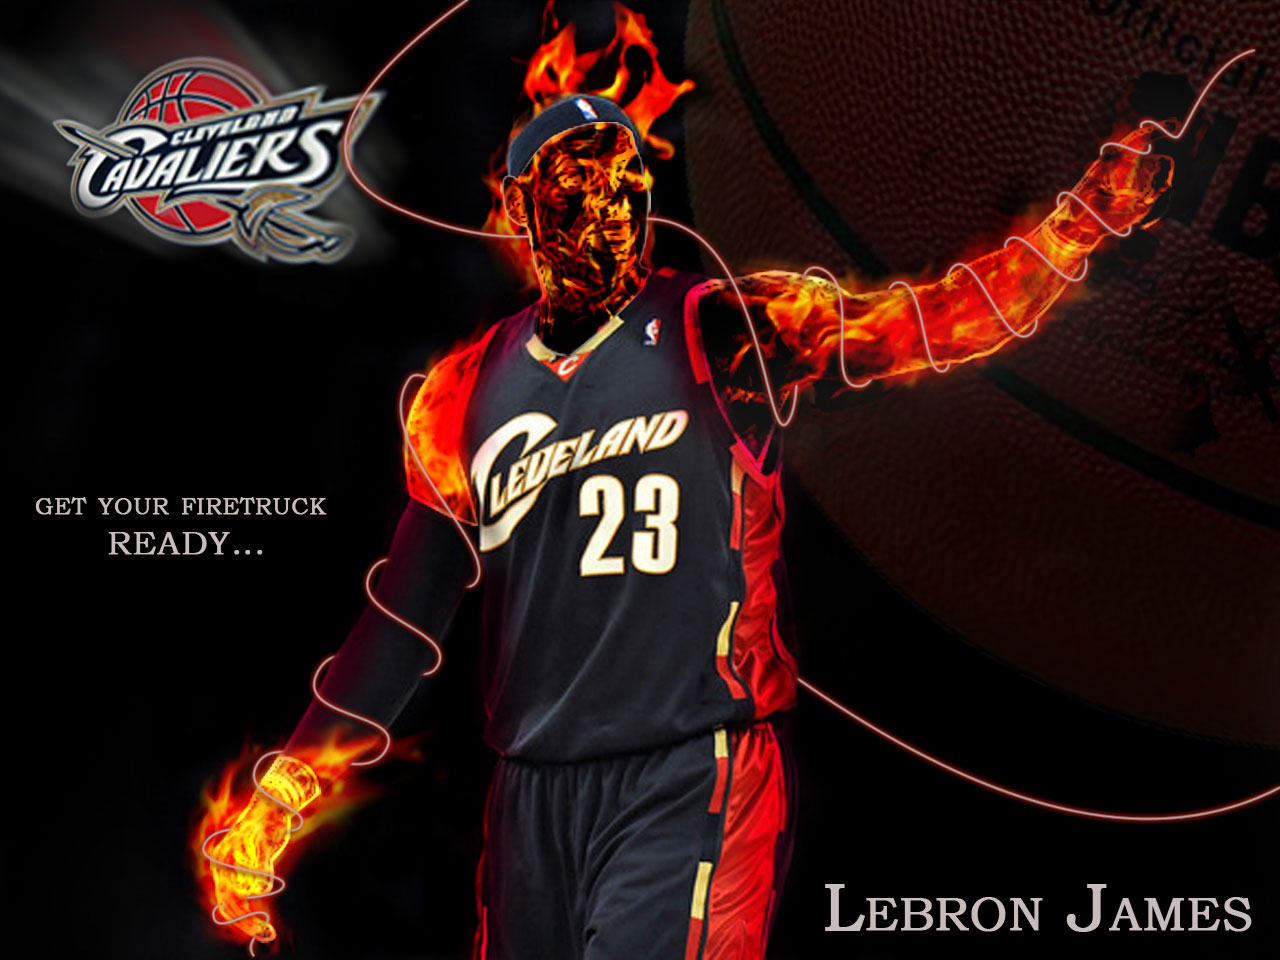 LeBron James Cleveland Wallpaper Wallpapers 1280x960